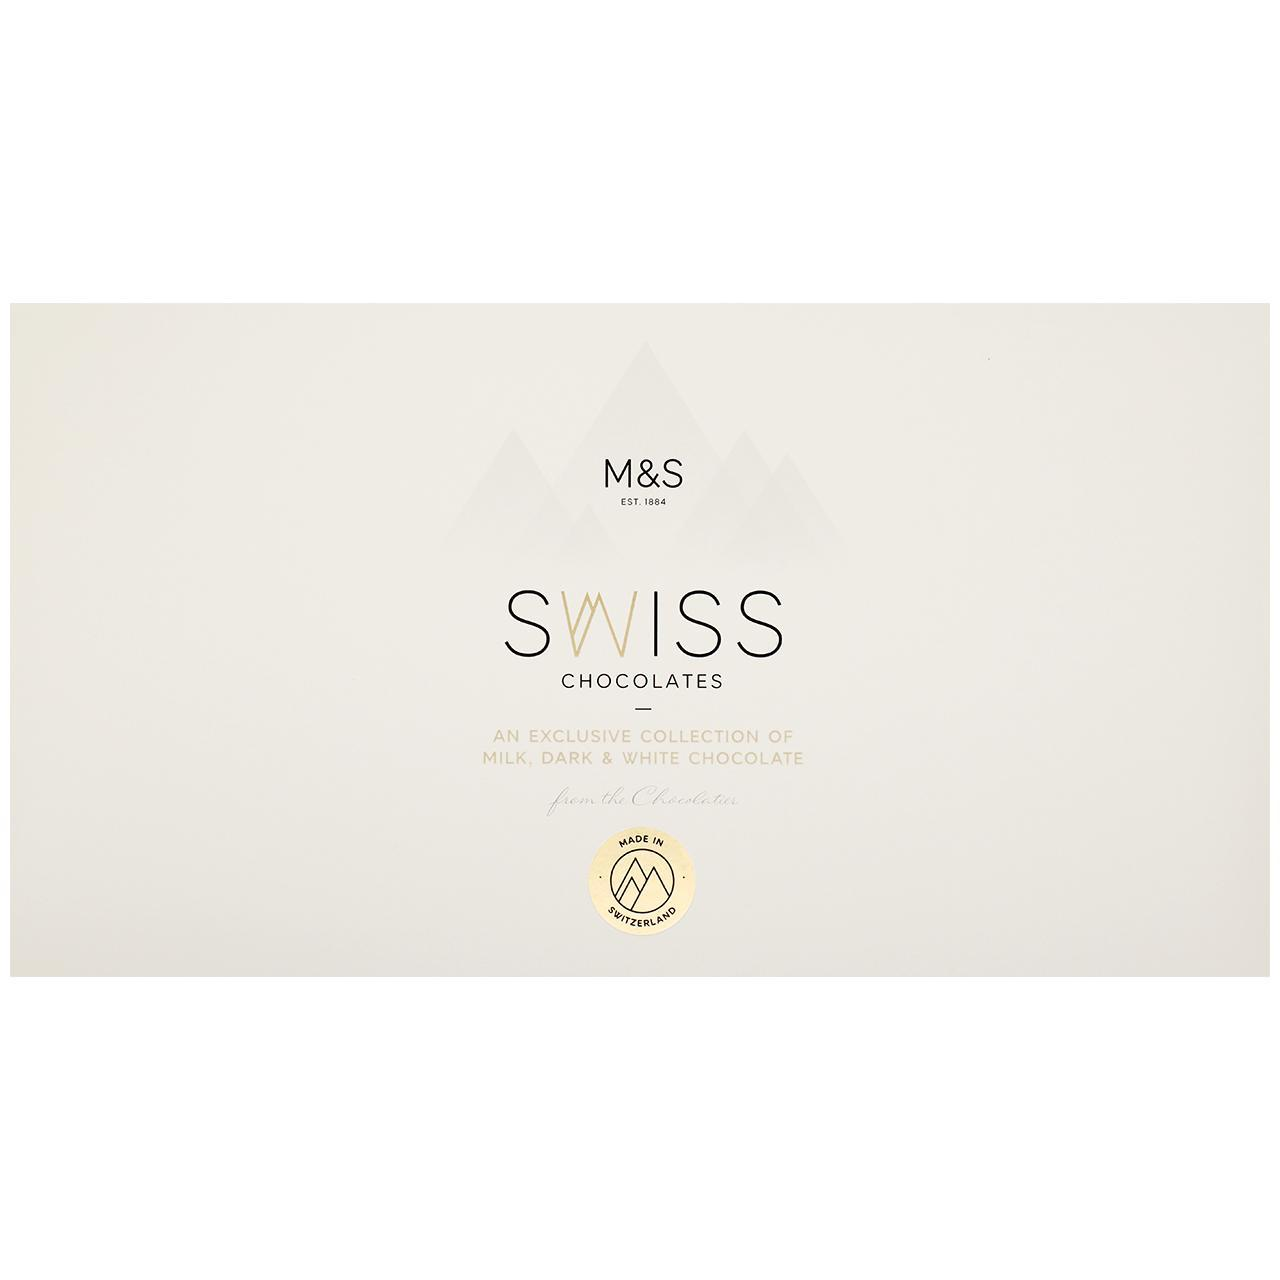 Exclusive Swiss Chocolate Collection 285g